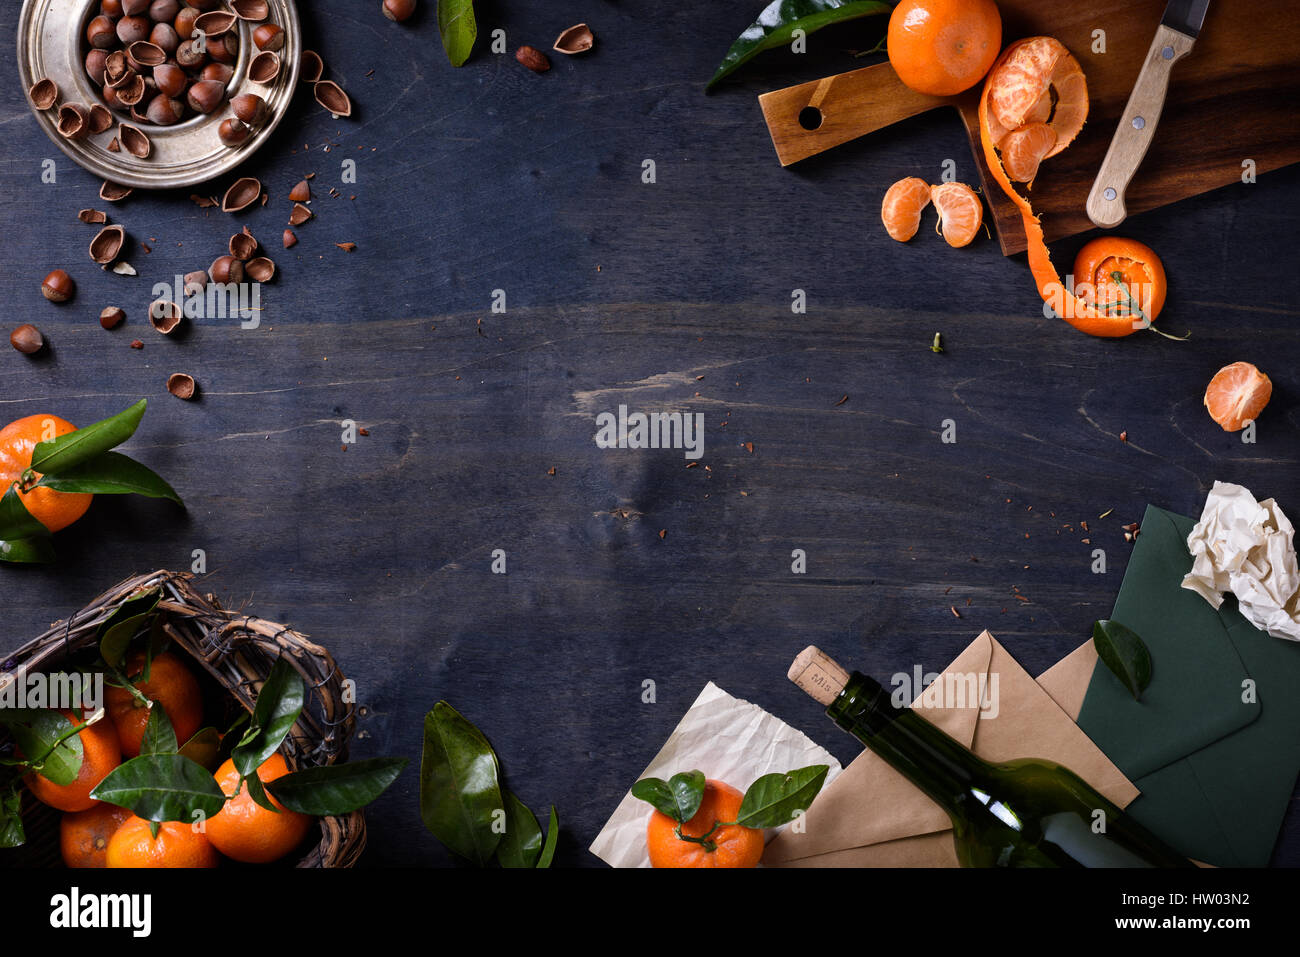 Mandarin fruits with hazelnuts and wine on wooden background. Healthy organic food frame. Top view, copy space, - Stock Image